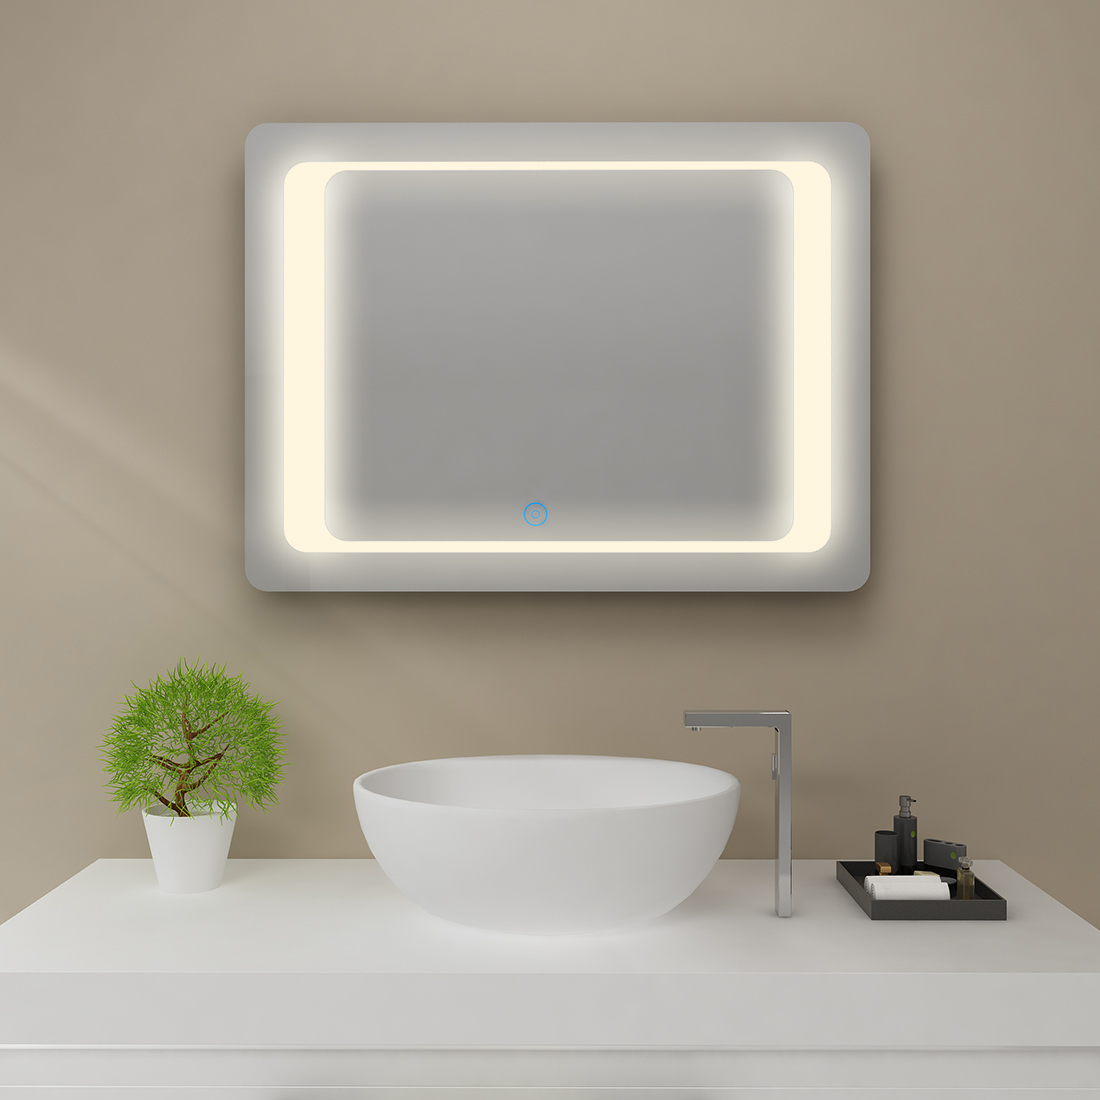 Details About SUNNY Intelligent Frameless Bathroom Mirror LED Light Touch  Screen Warm White